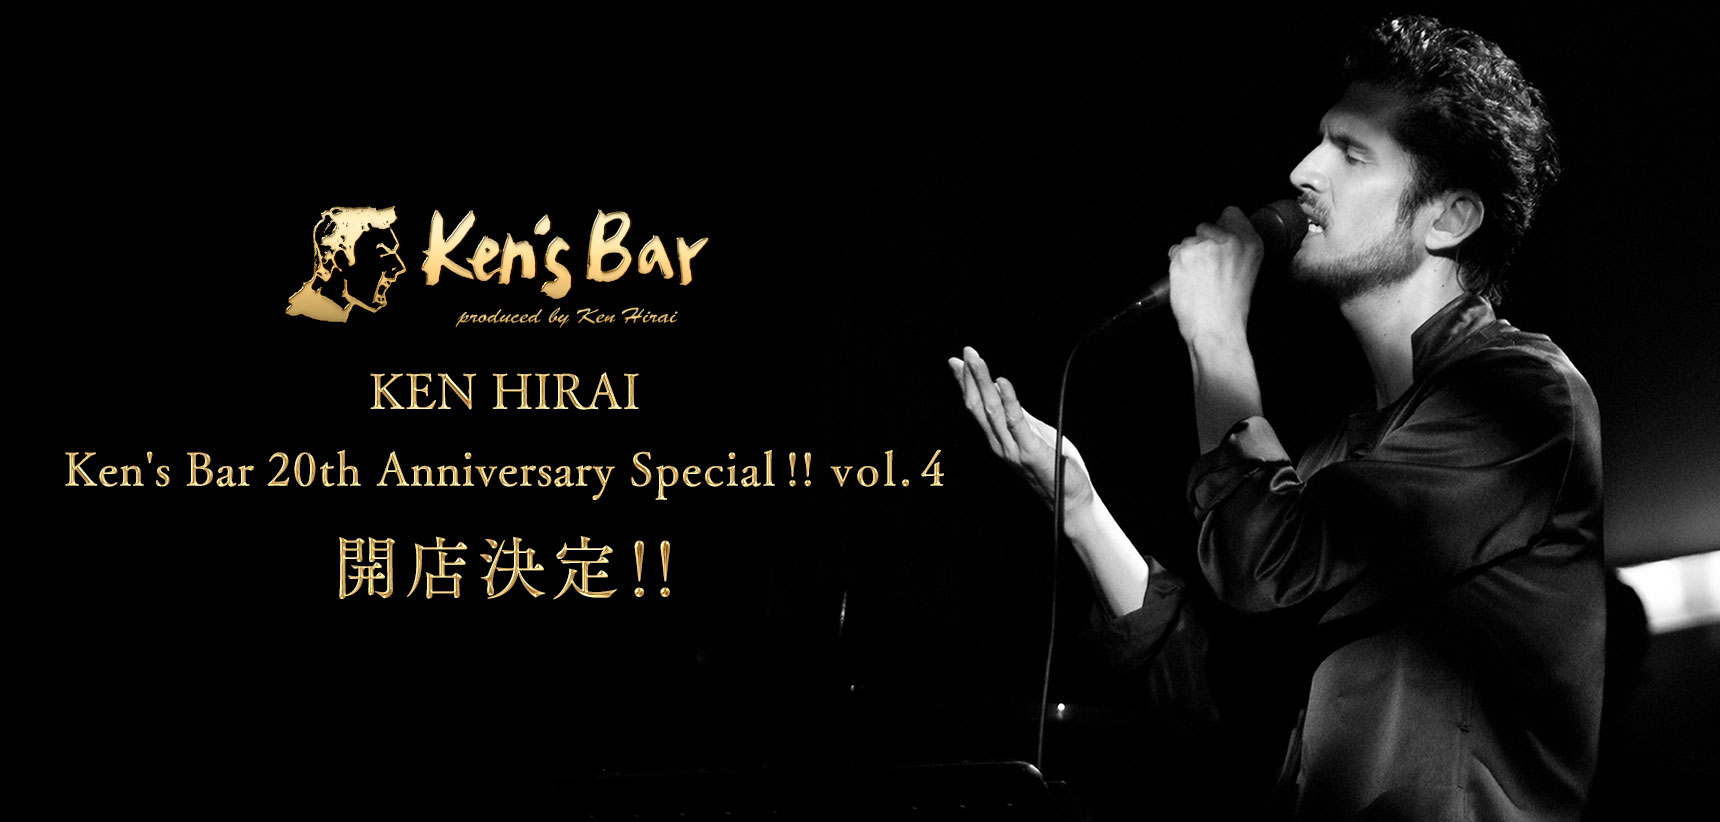 「Ken's Bar 20th Anniversary Special !! vol.4」開店決定!!